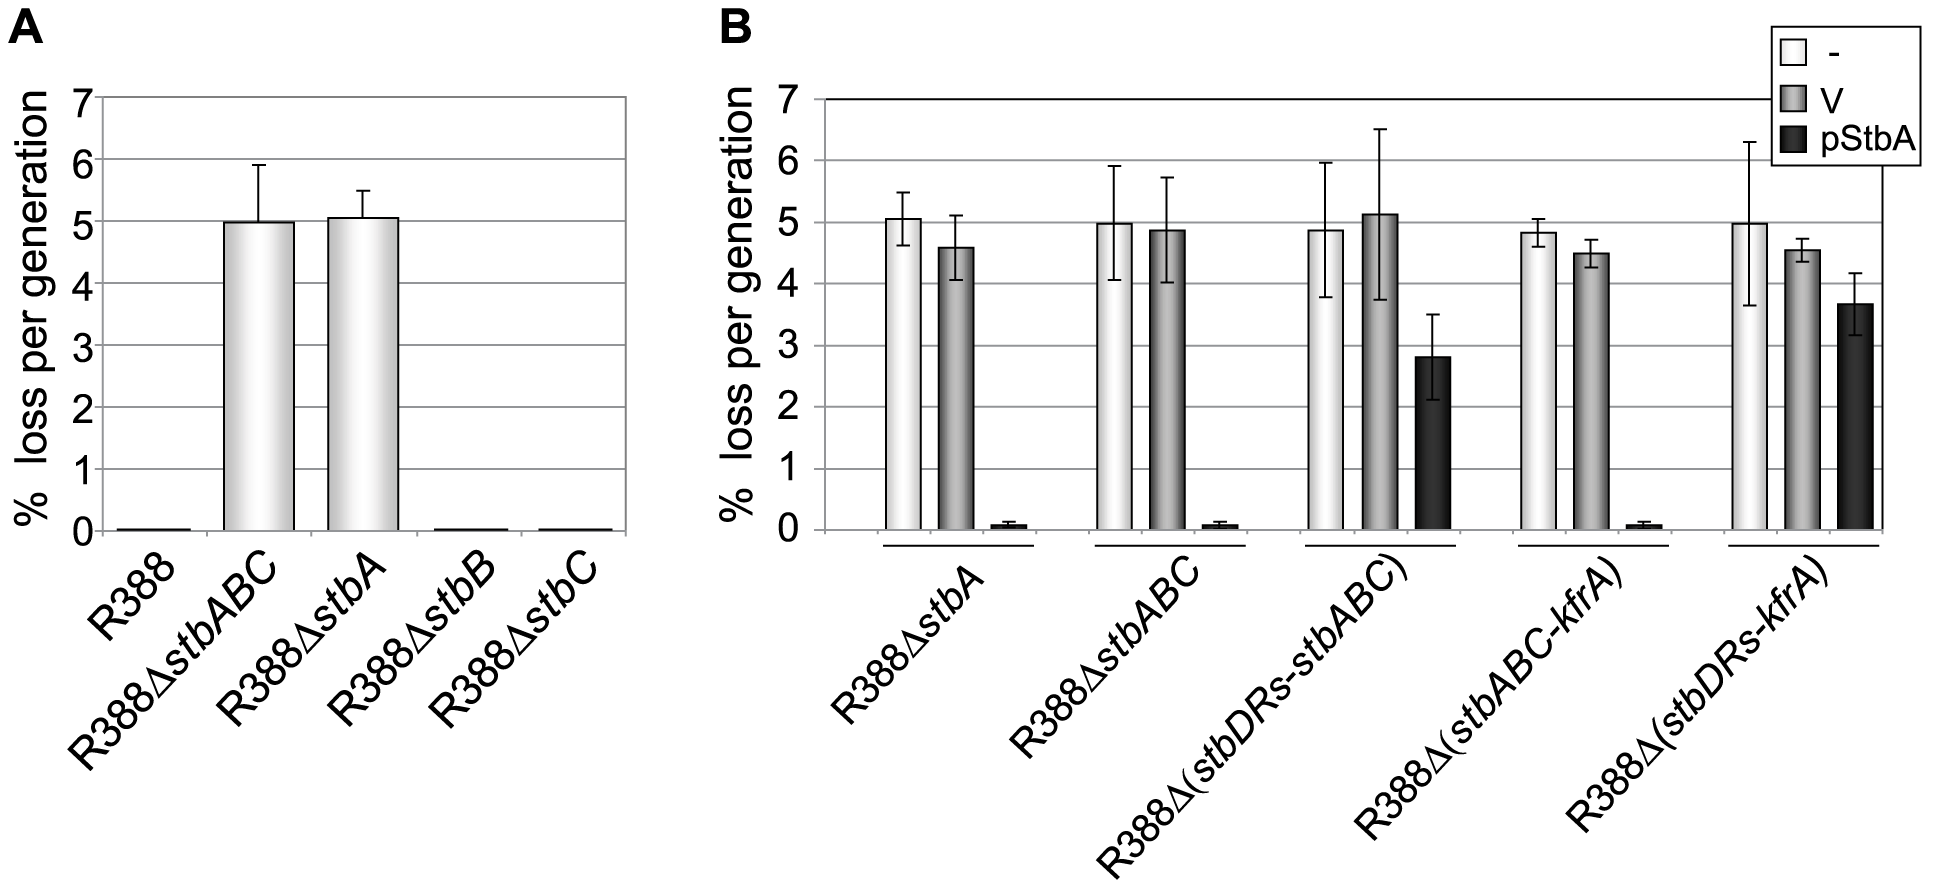 Stability of plasmid R388 derivatives.